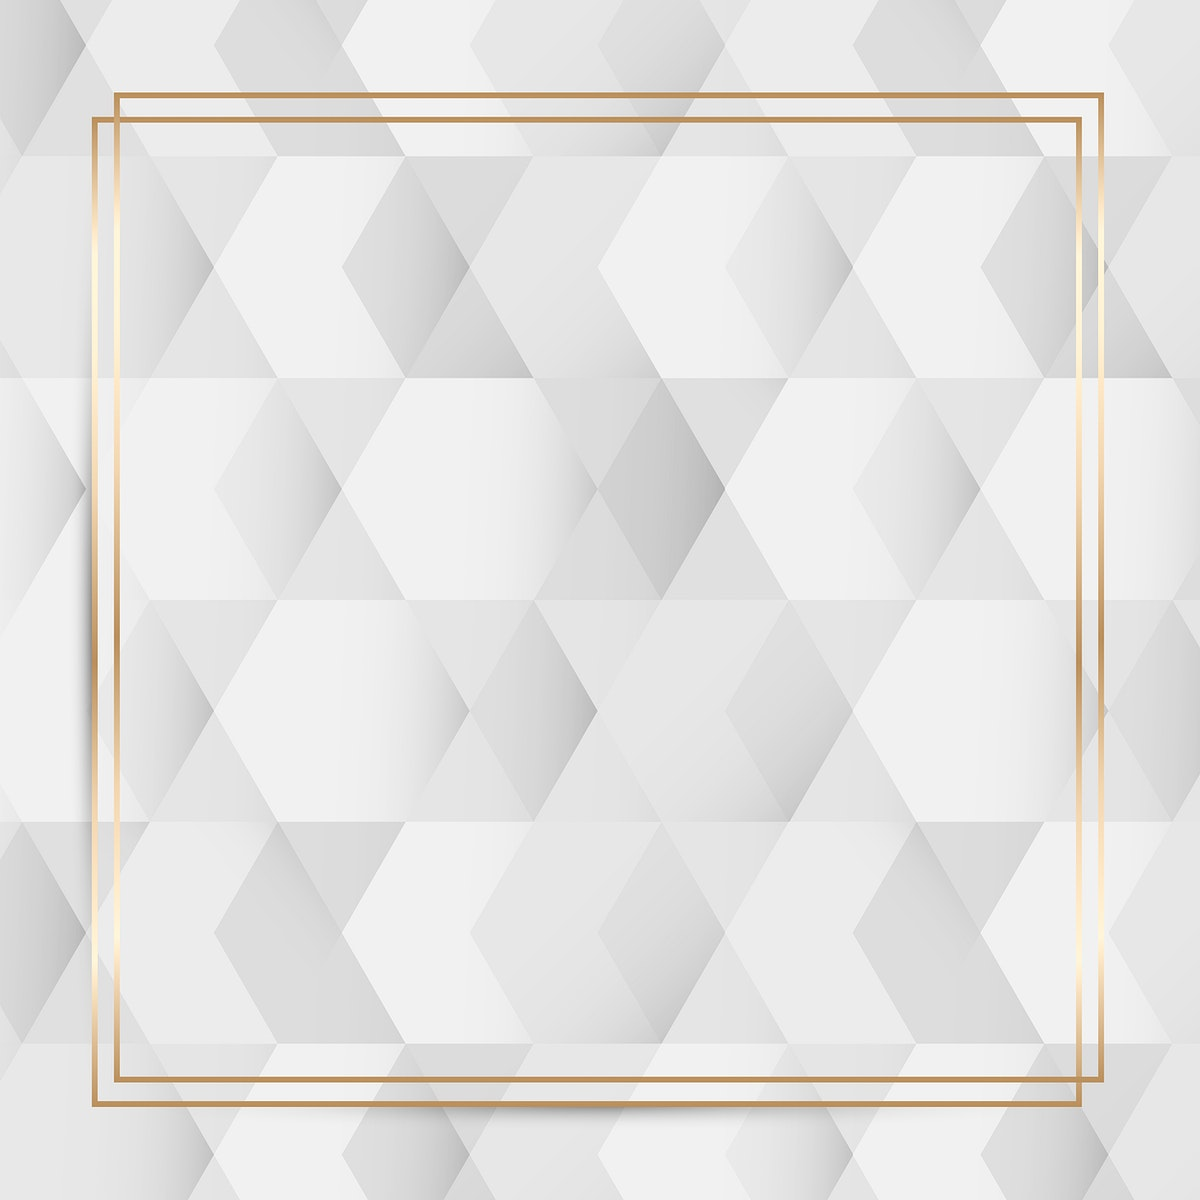 Gold frame on white and gray geometric pattern background vector